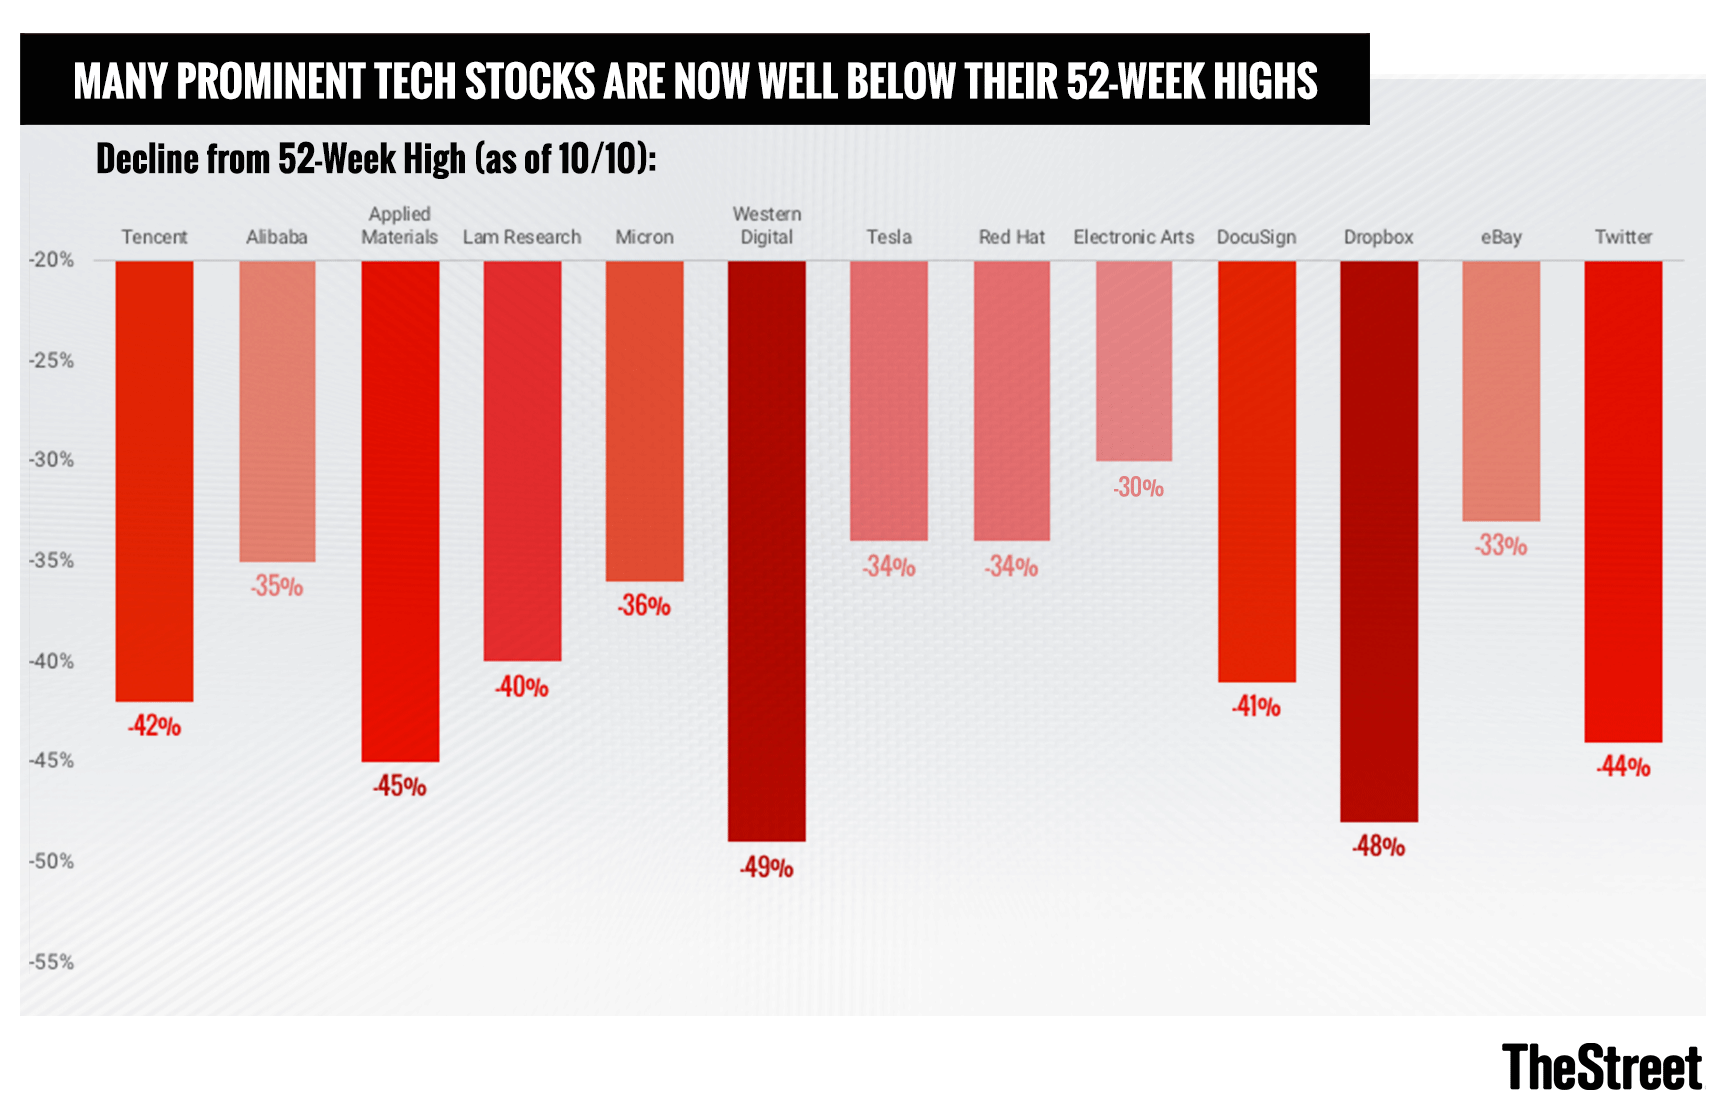 8 Tech Stocks That Show Just How Much Valuations Have Fallen Thestreet